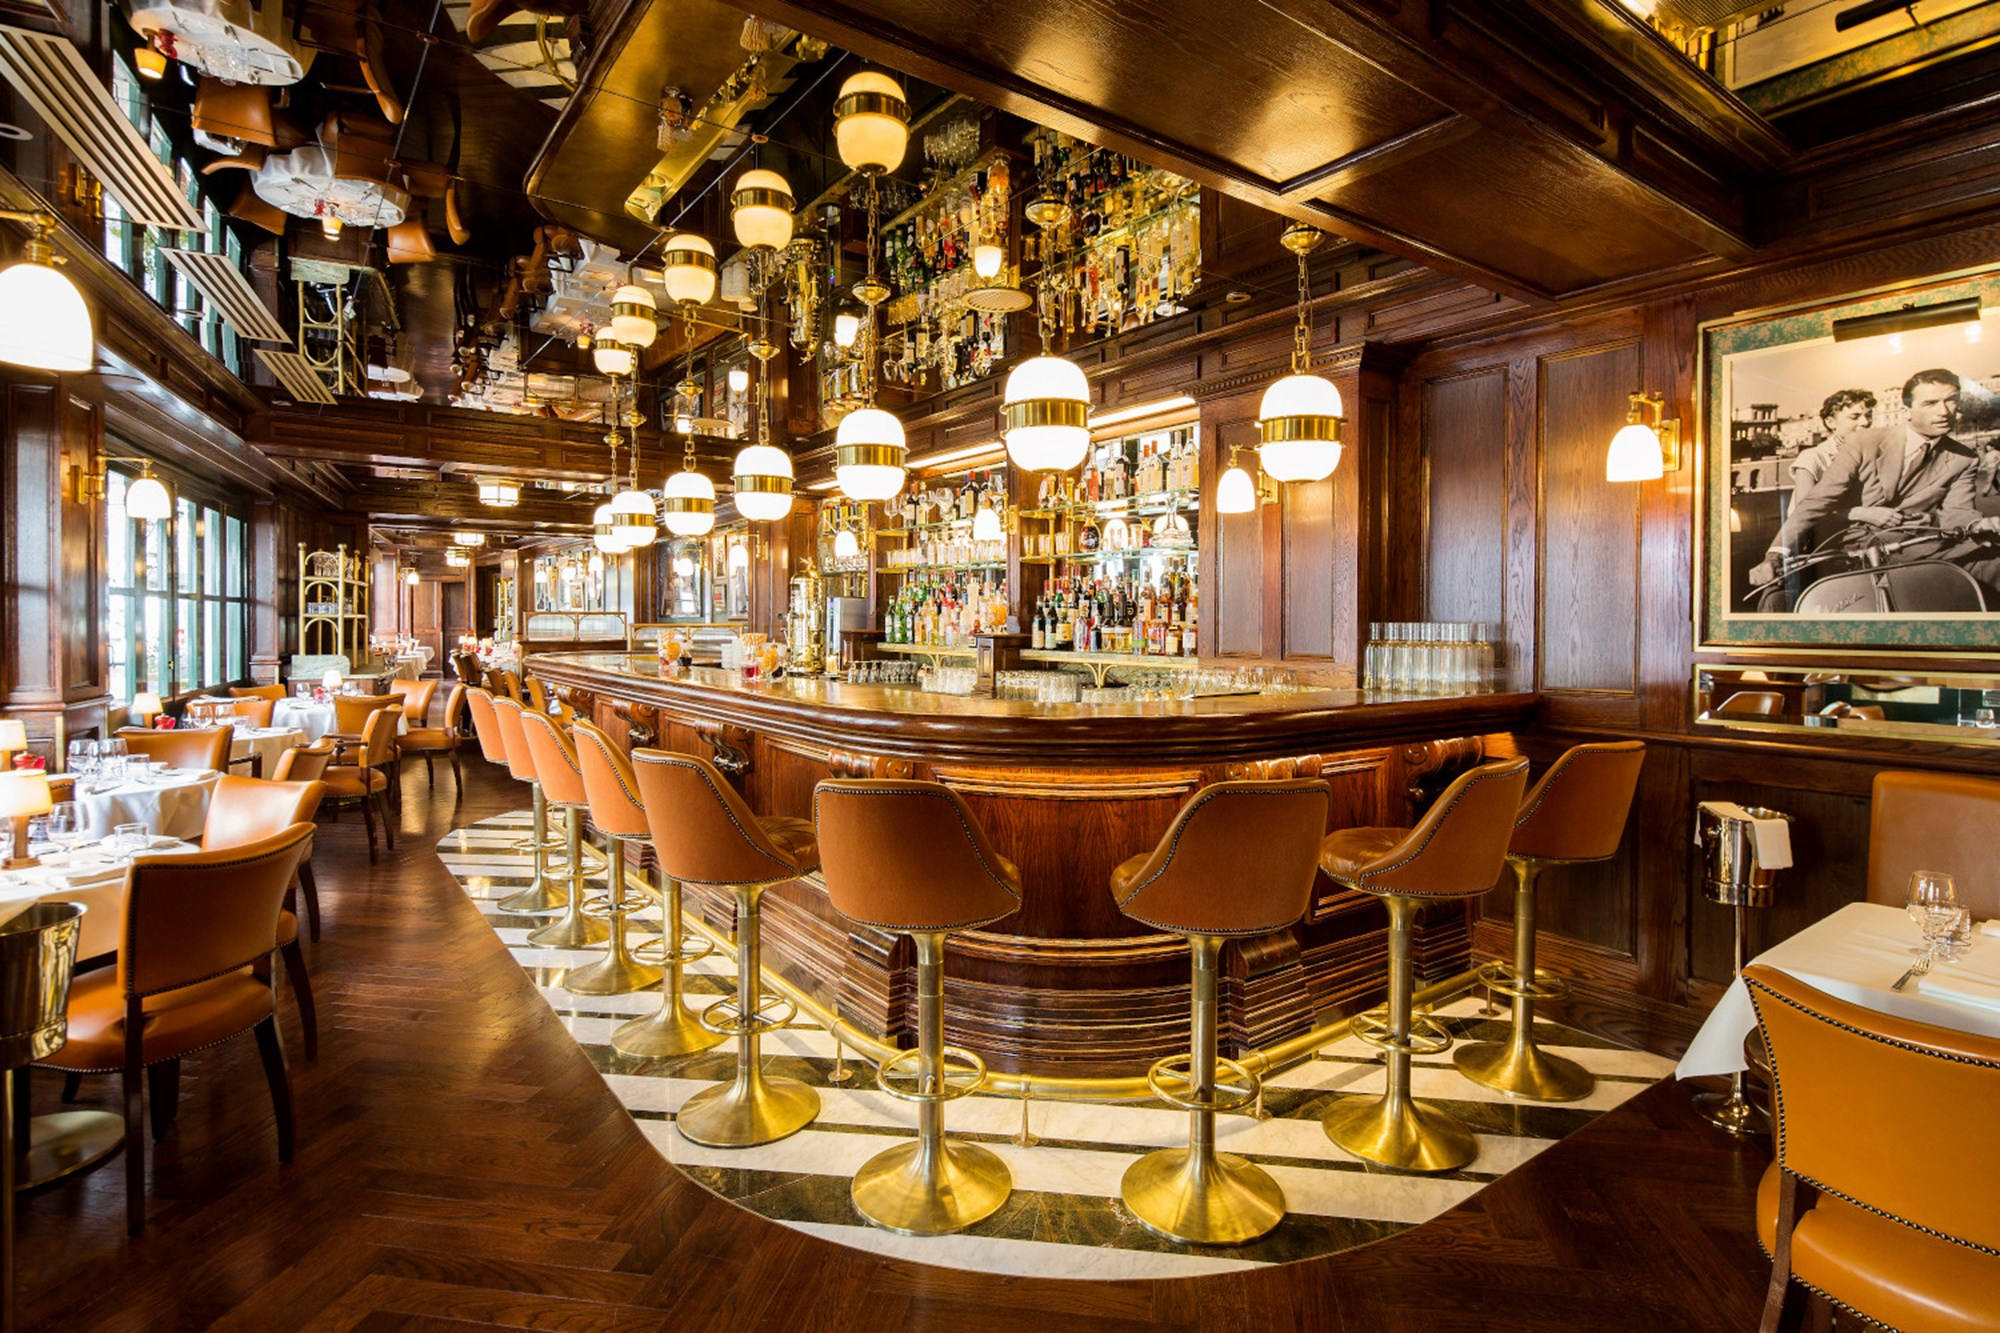 The bar at Harry's Dolce Vita Italian Restaurant in Knightsbridge